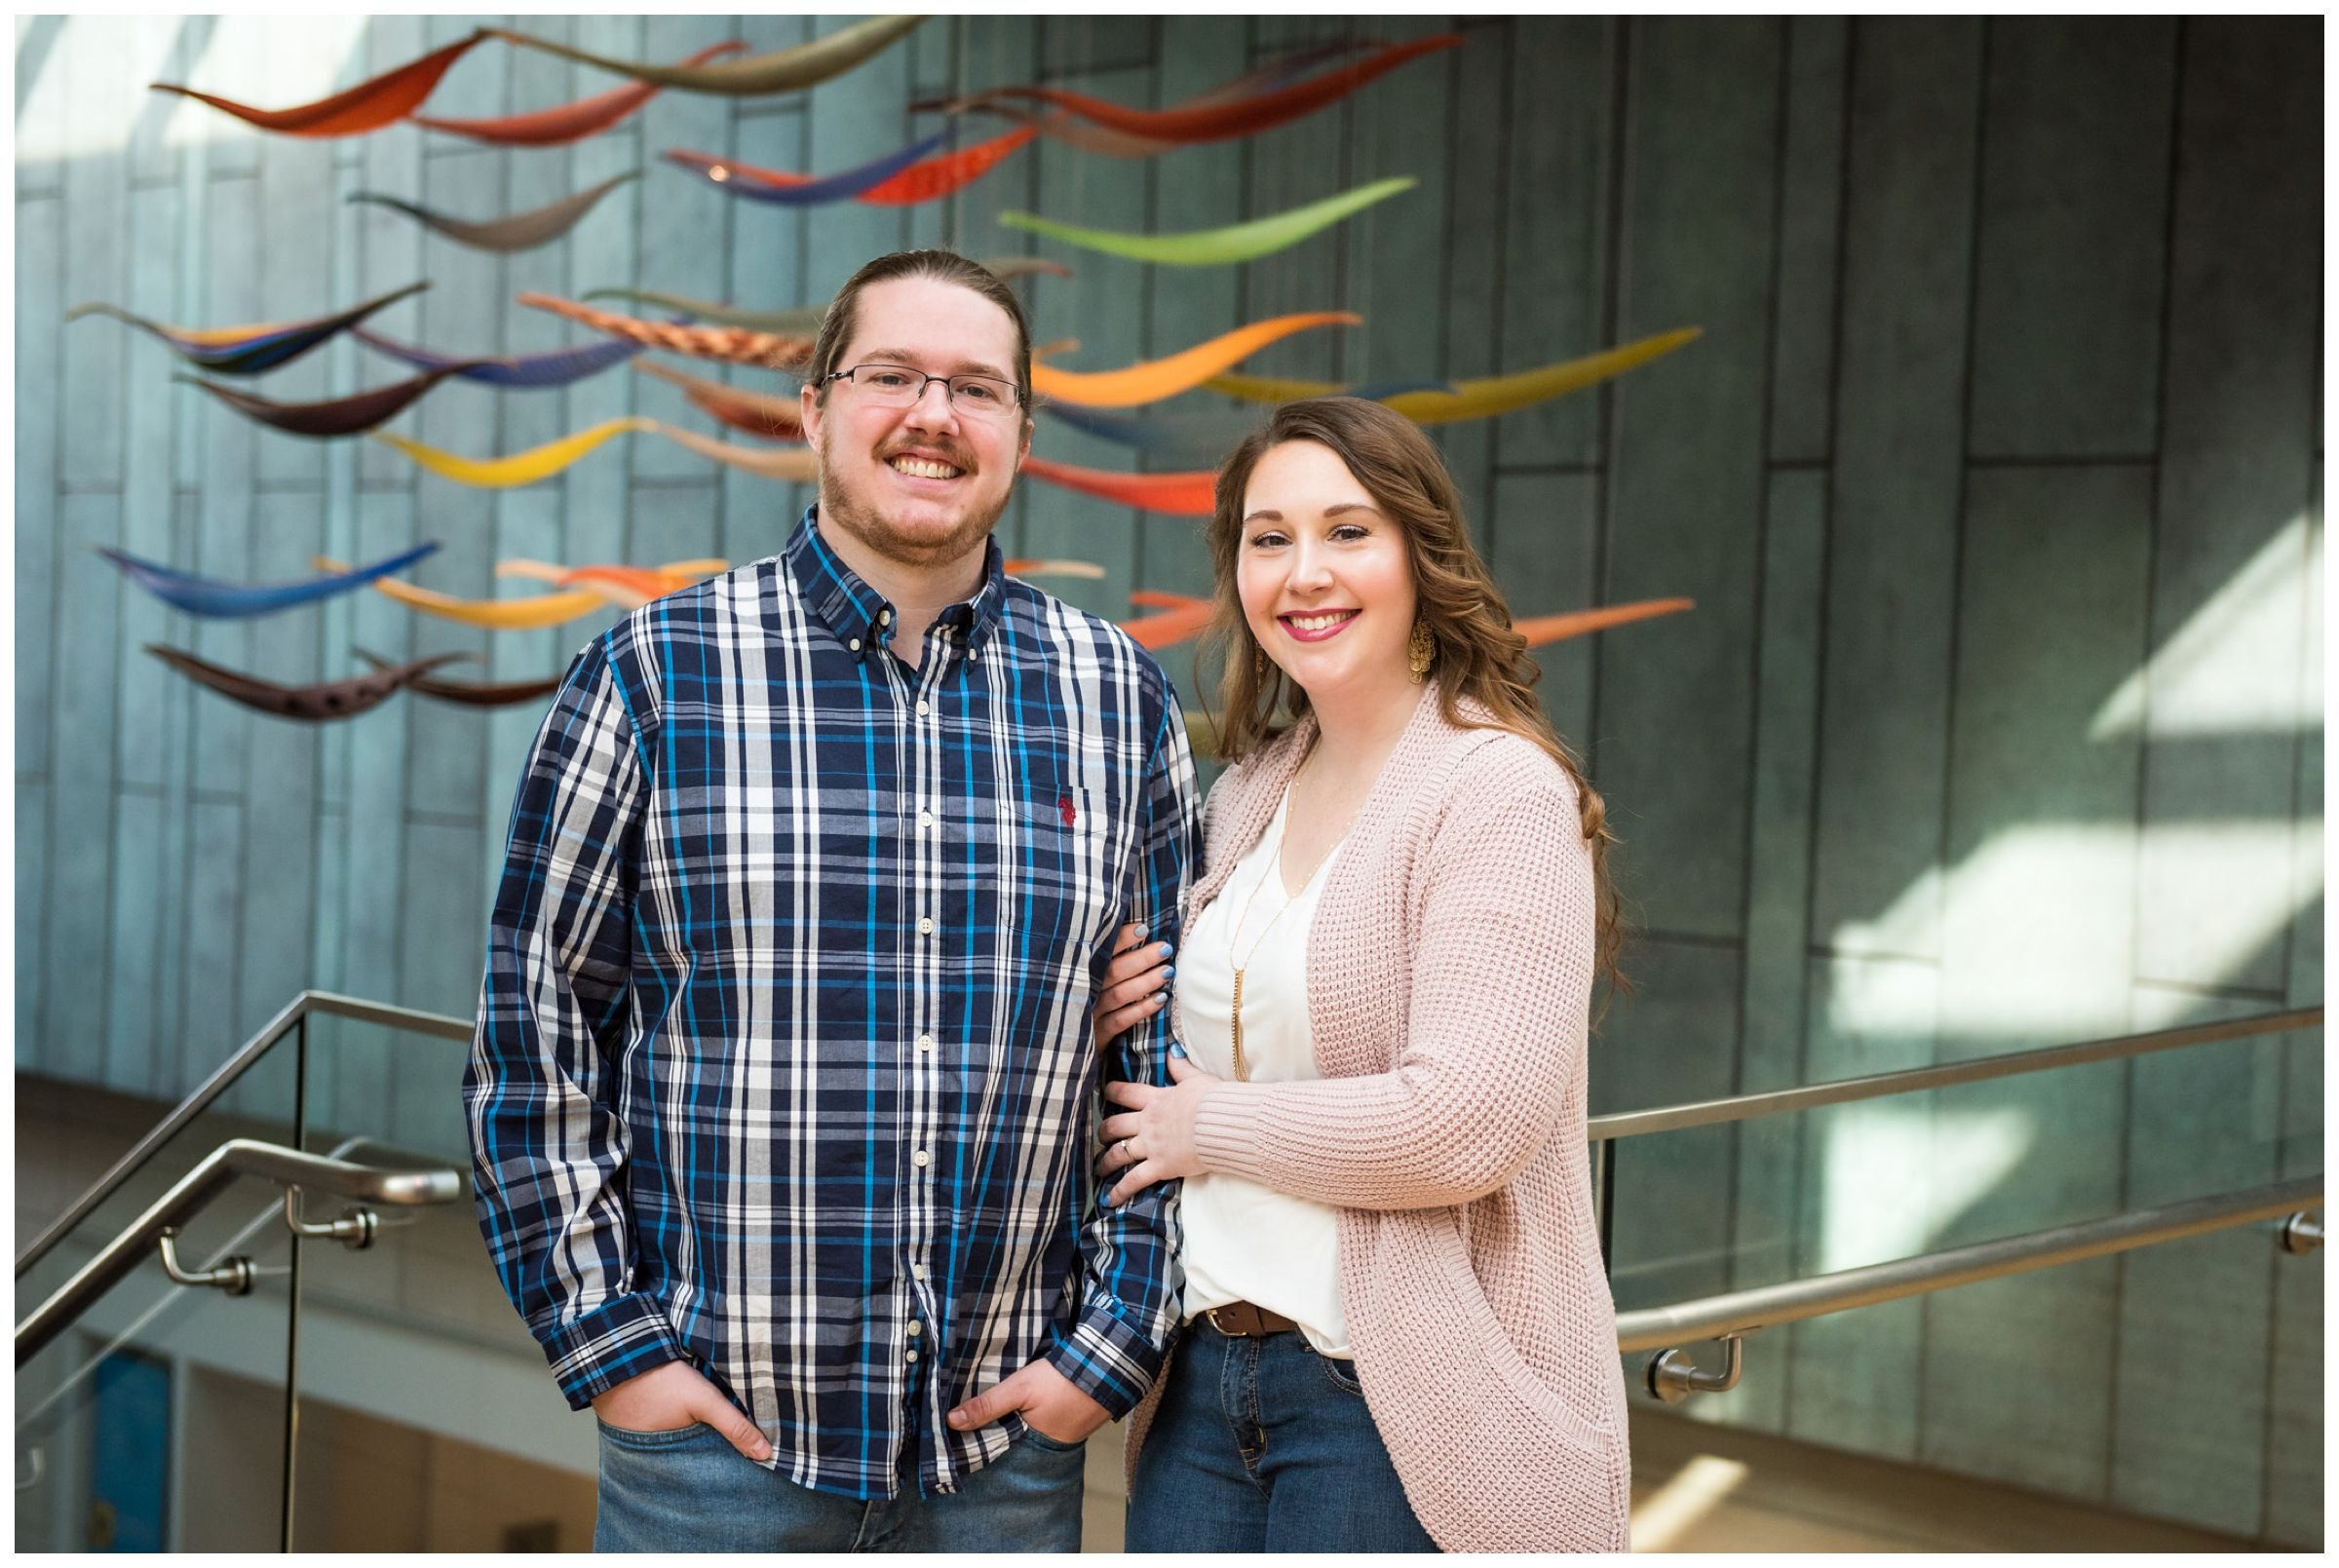 Winter indoor engagement photos in the atrium of the Columbus Museum of Art surrounded by colorful hanging glass artwork.